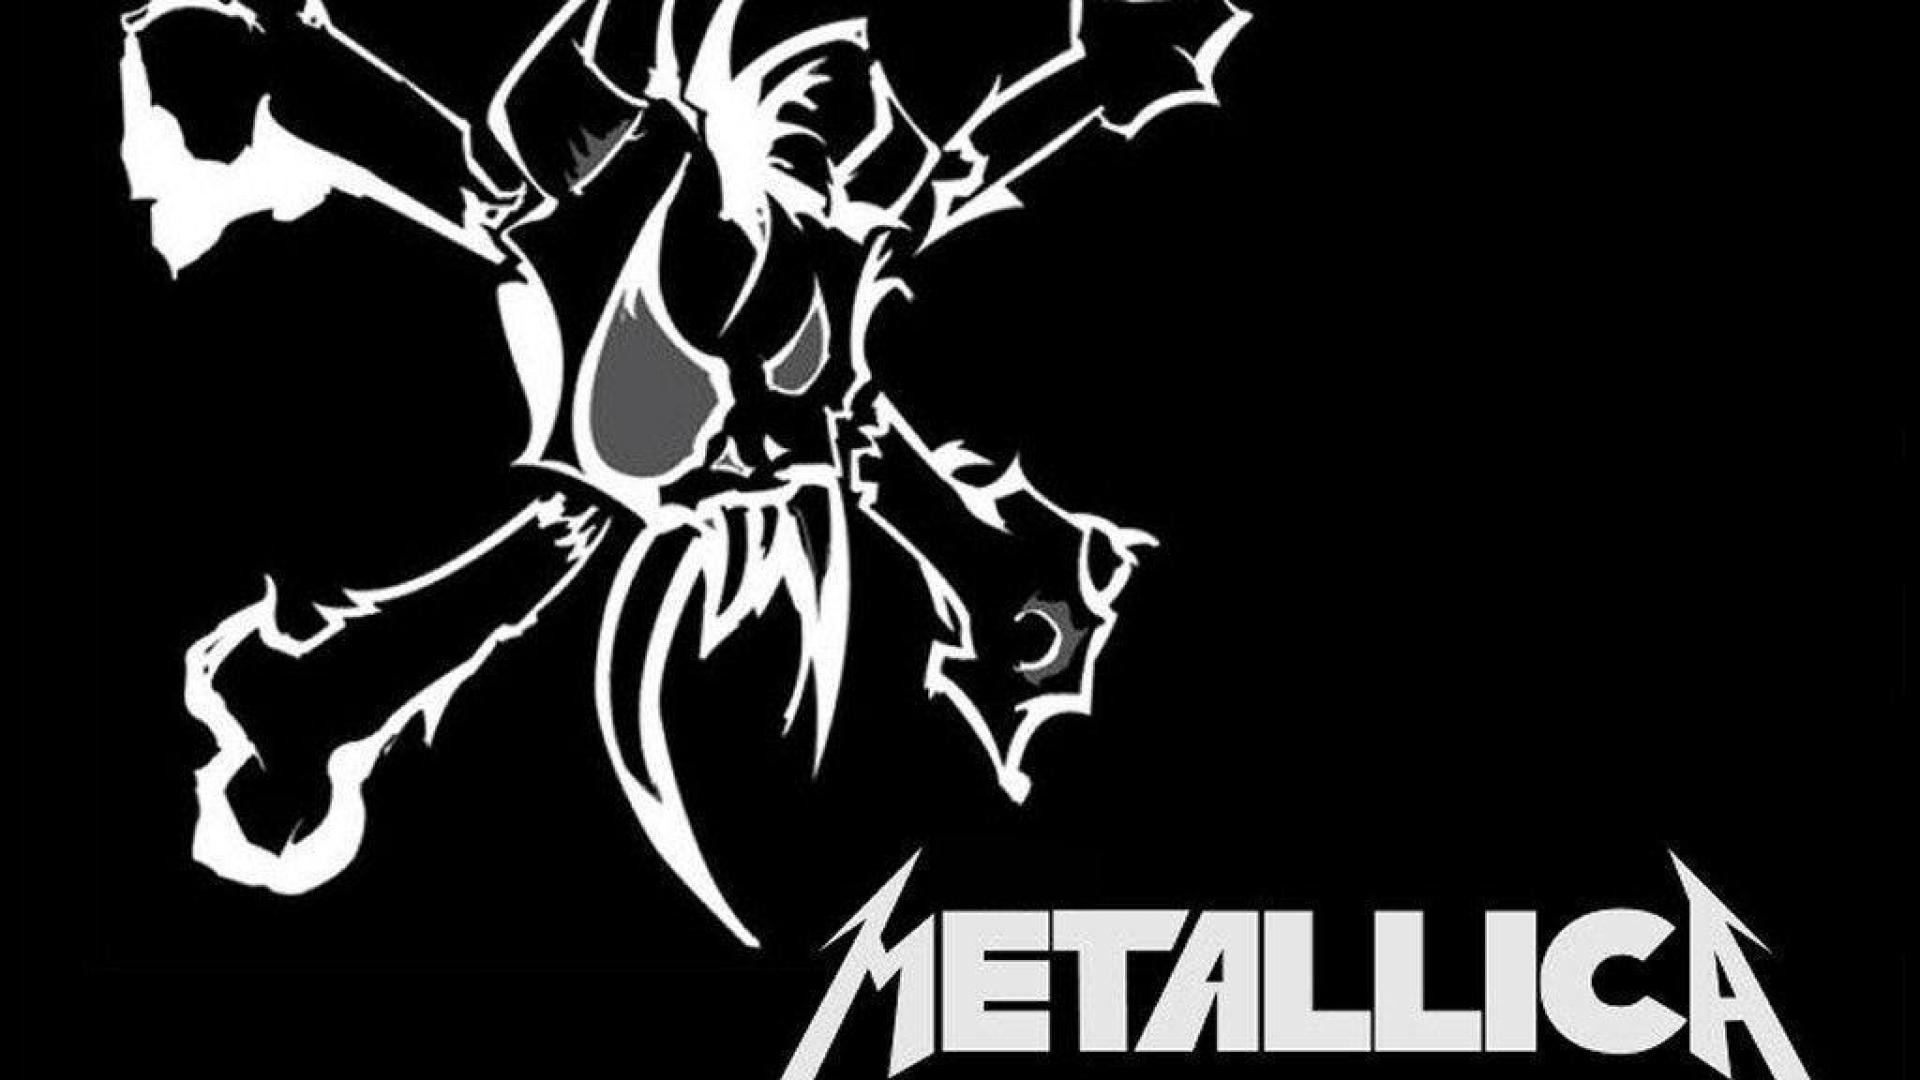 Metallica HD Wallpapers and Backgrounds 1920×1080 Metalica Wallpapers (40  Wallpapers) | Adorable